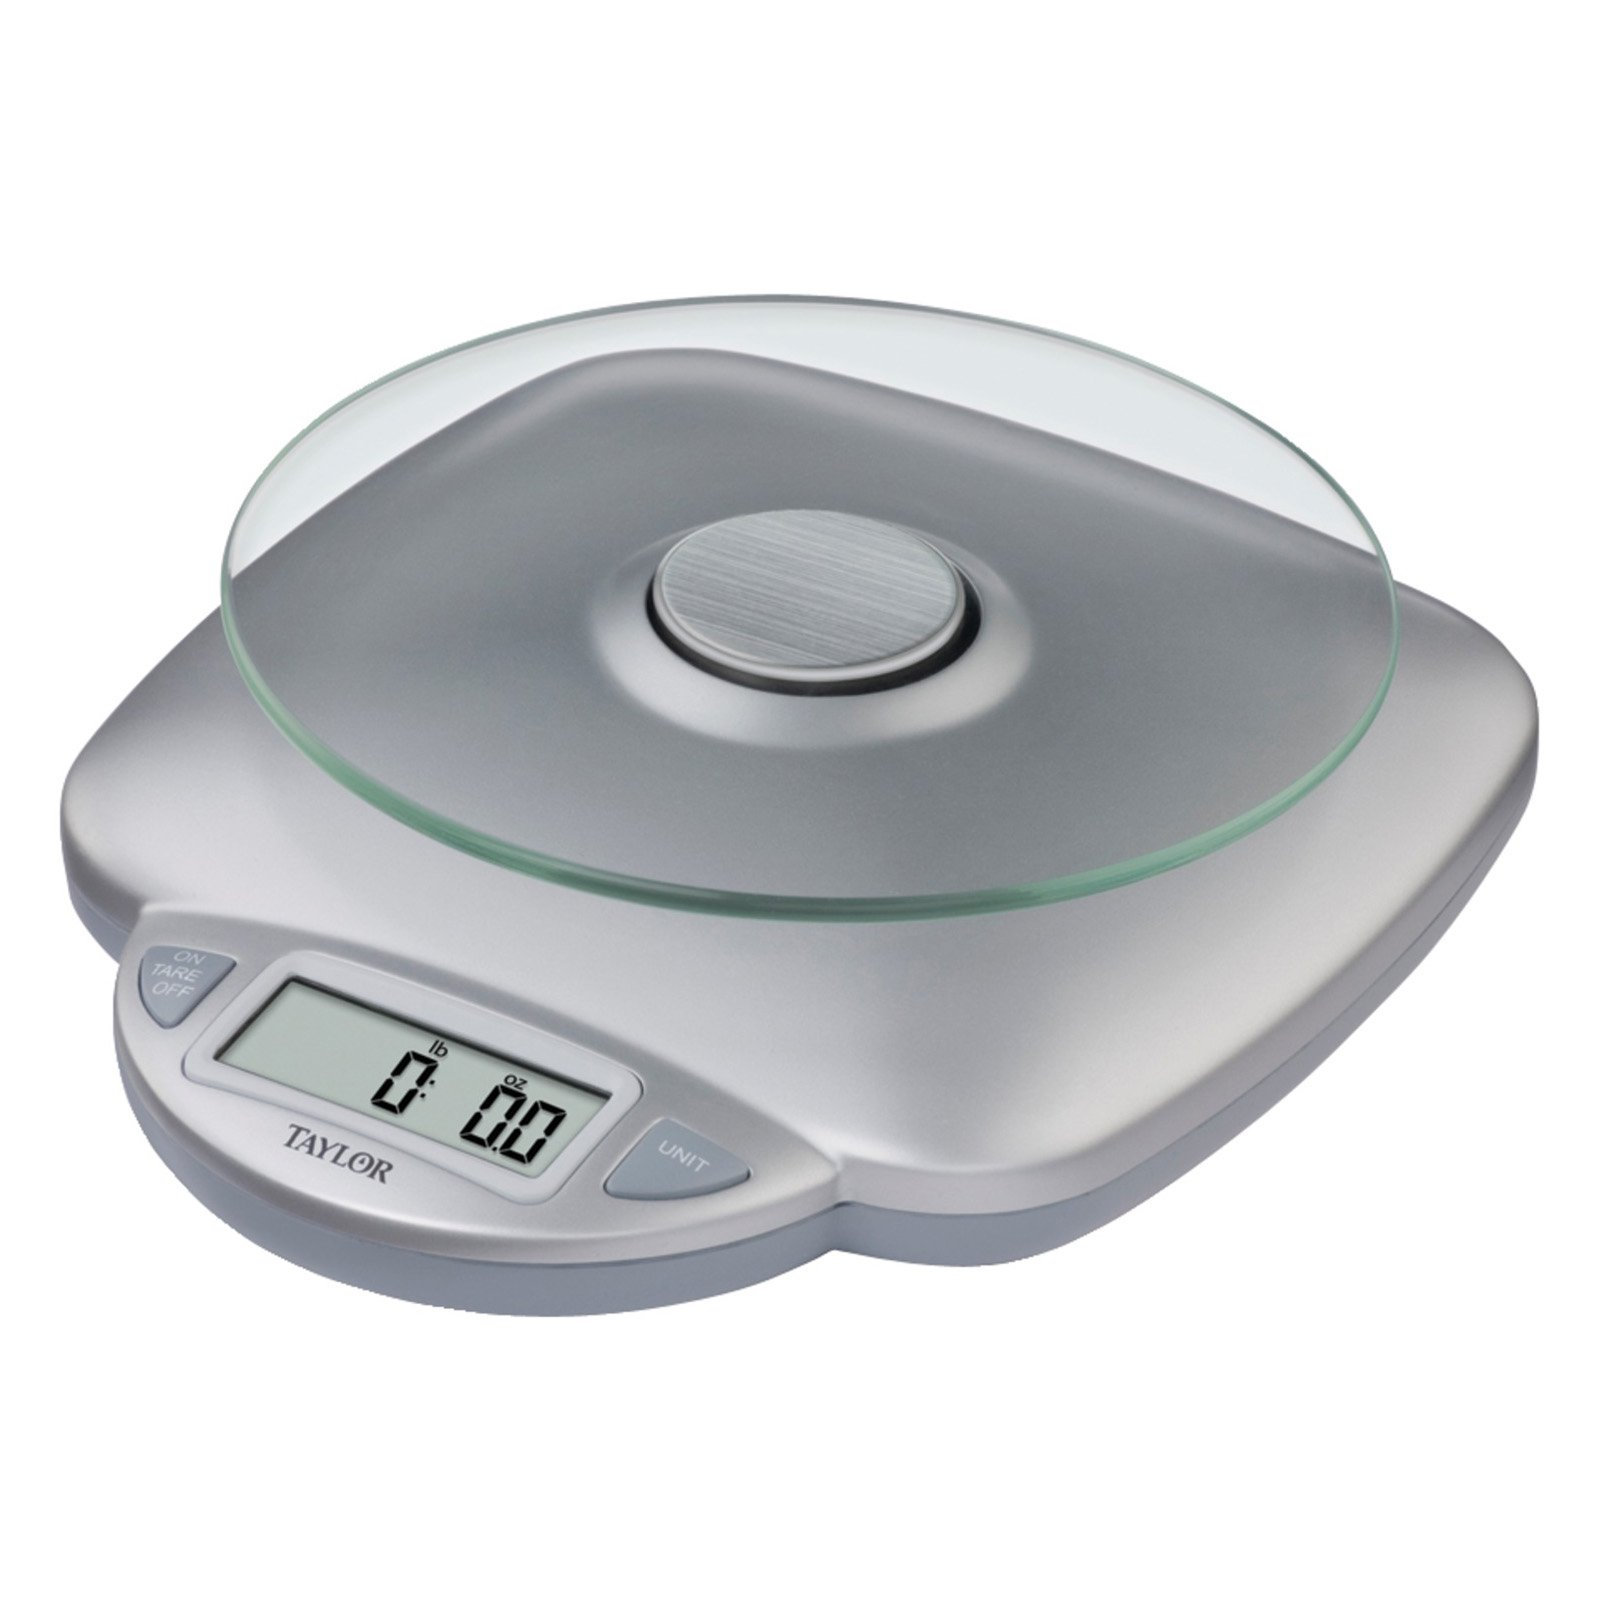 Charmant Taylor 3842 Digital Food Scale   Walmart.com